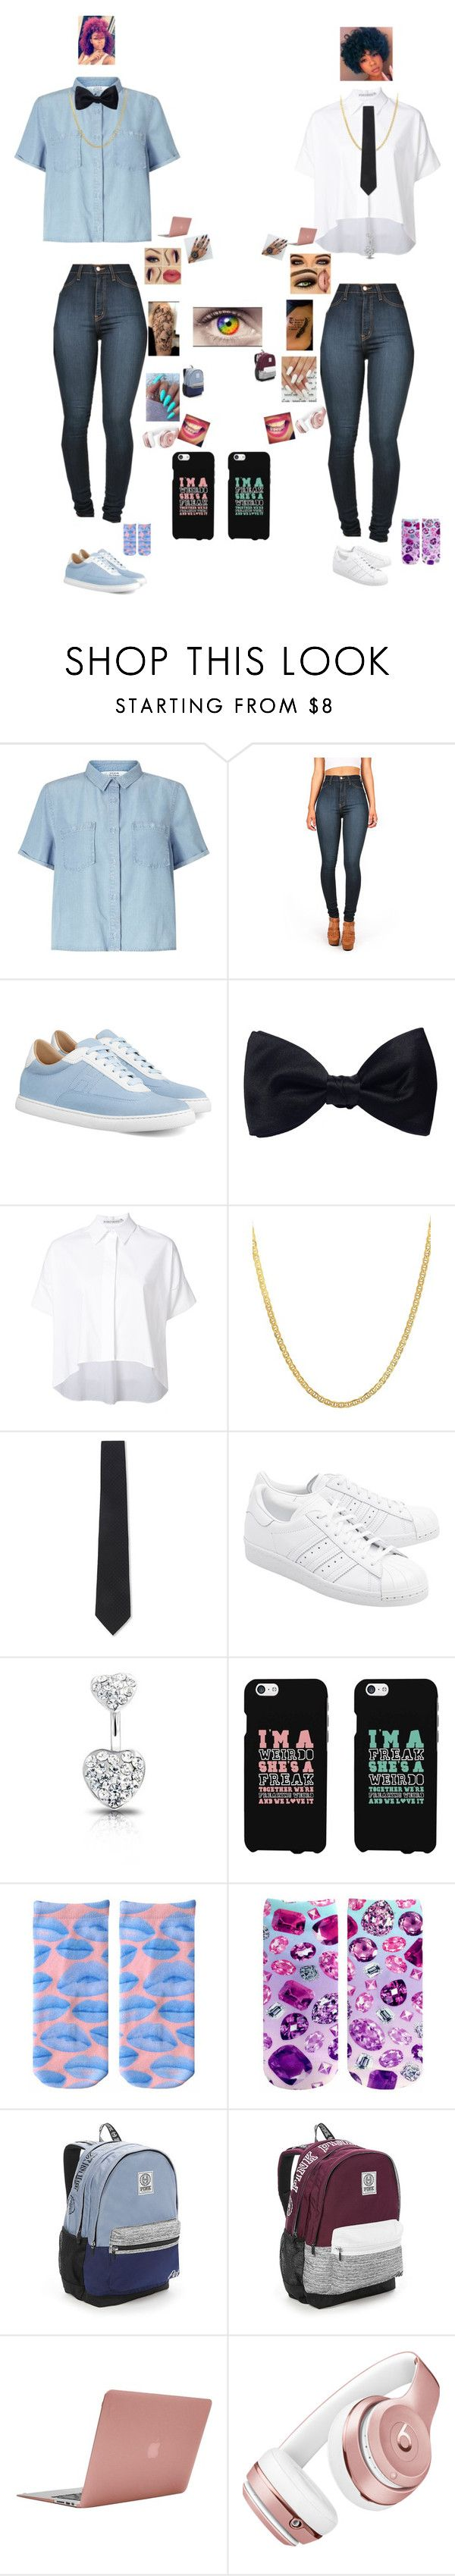 """""""We Tried to be Sophisticated😂😂✌🏽️"""" by unique374 ❤ liked on Polyvore featuring Miss Selfridge, Vibrant, Ike Behar, Alice + Olivia, Lord & Taylor, Armani Collezioni, adidas Originals, Bling Jewelry, Victoria's Secret and Incase"""